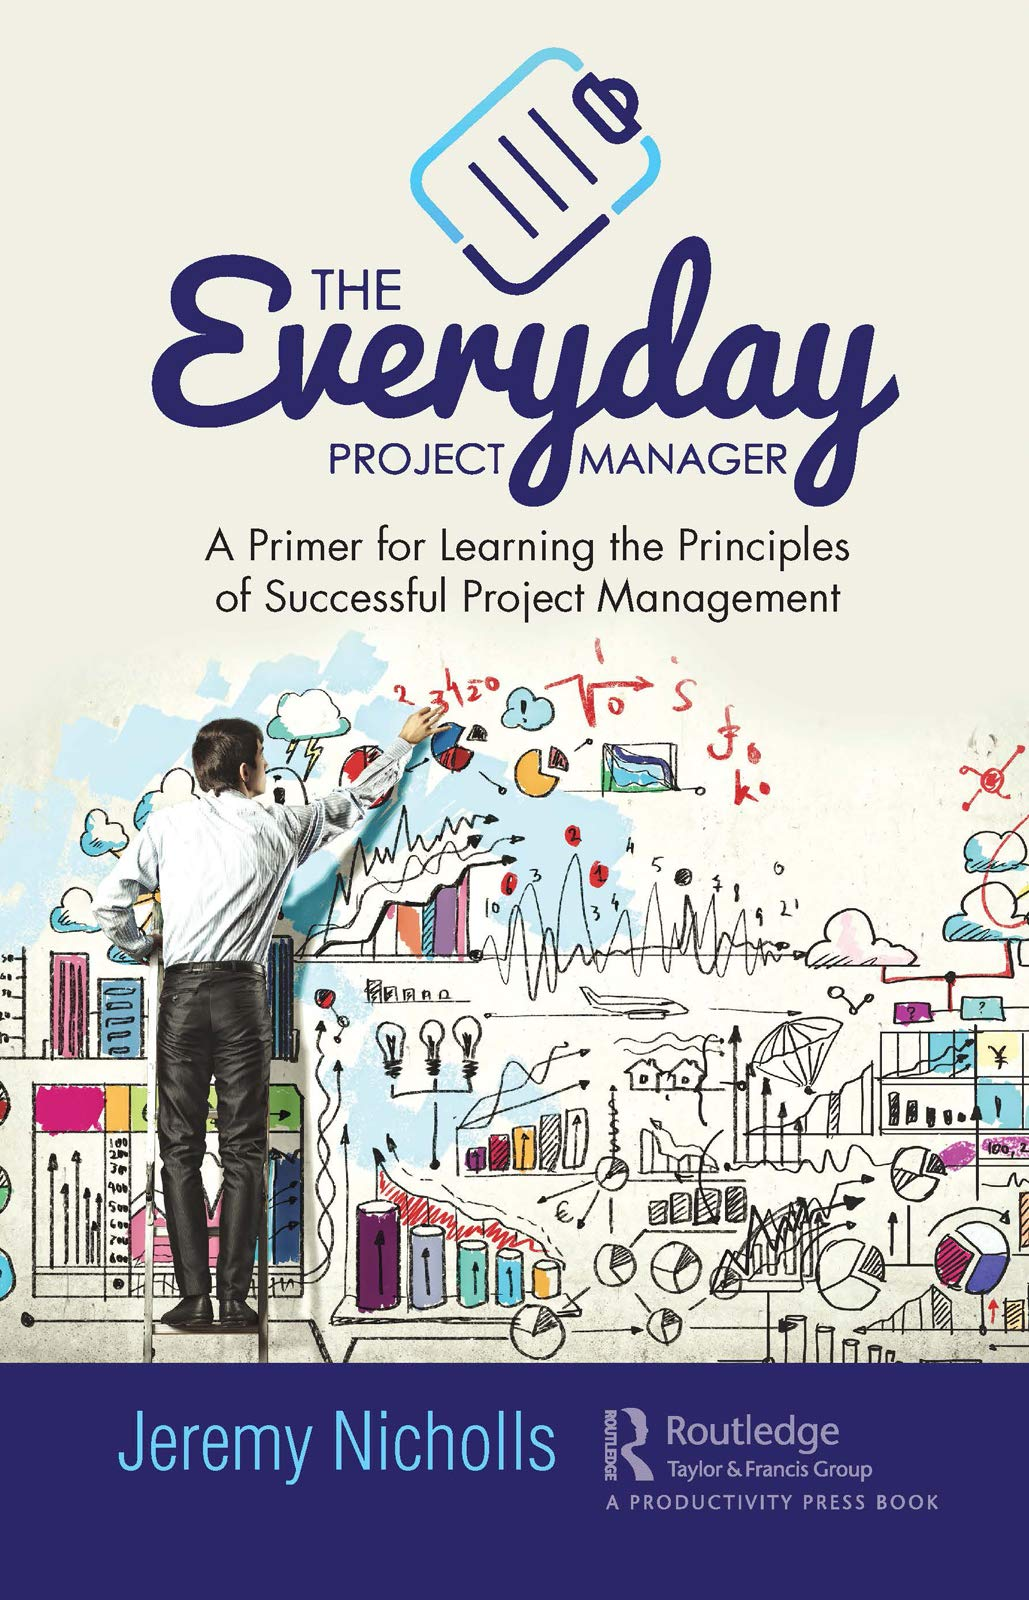 The Everyday Project Manager: A Primer for Learning the Principles of Successful Project Management